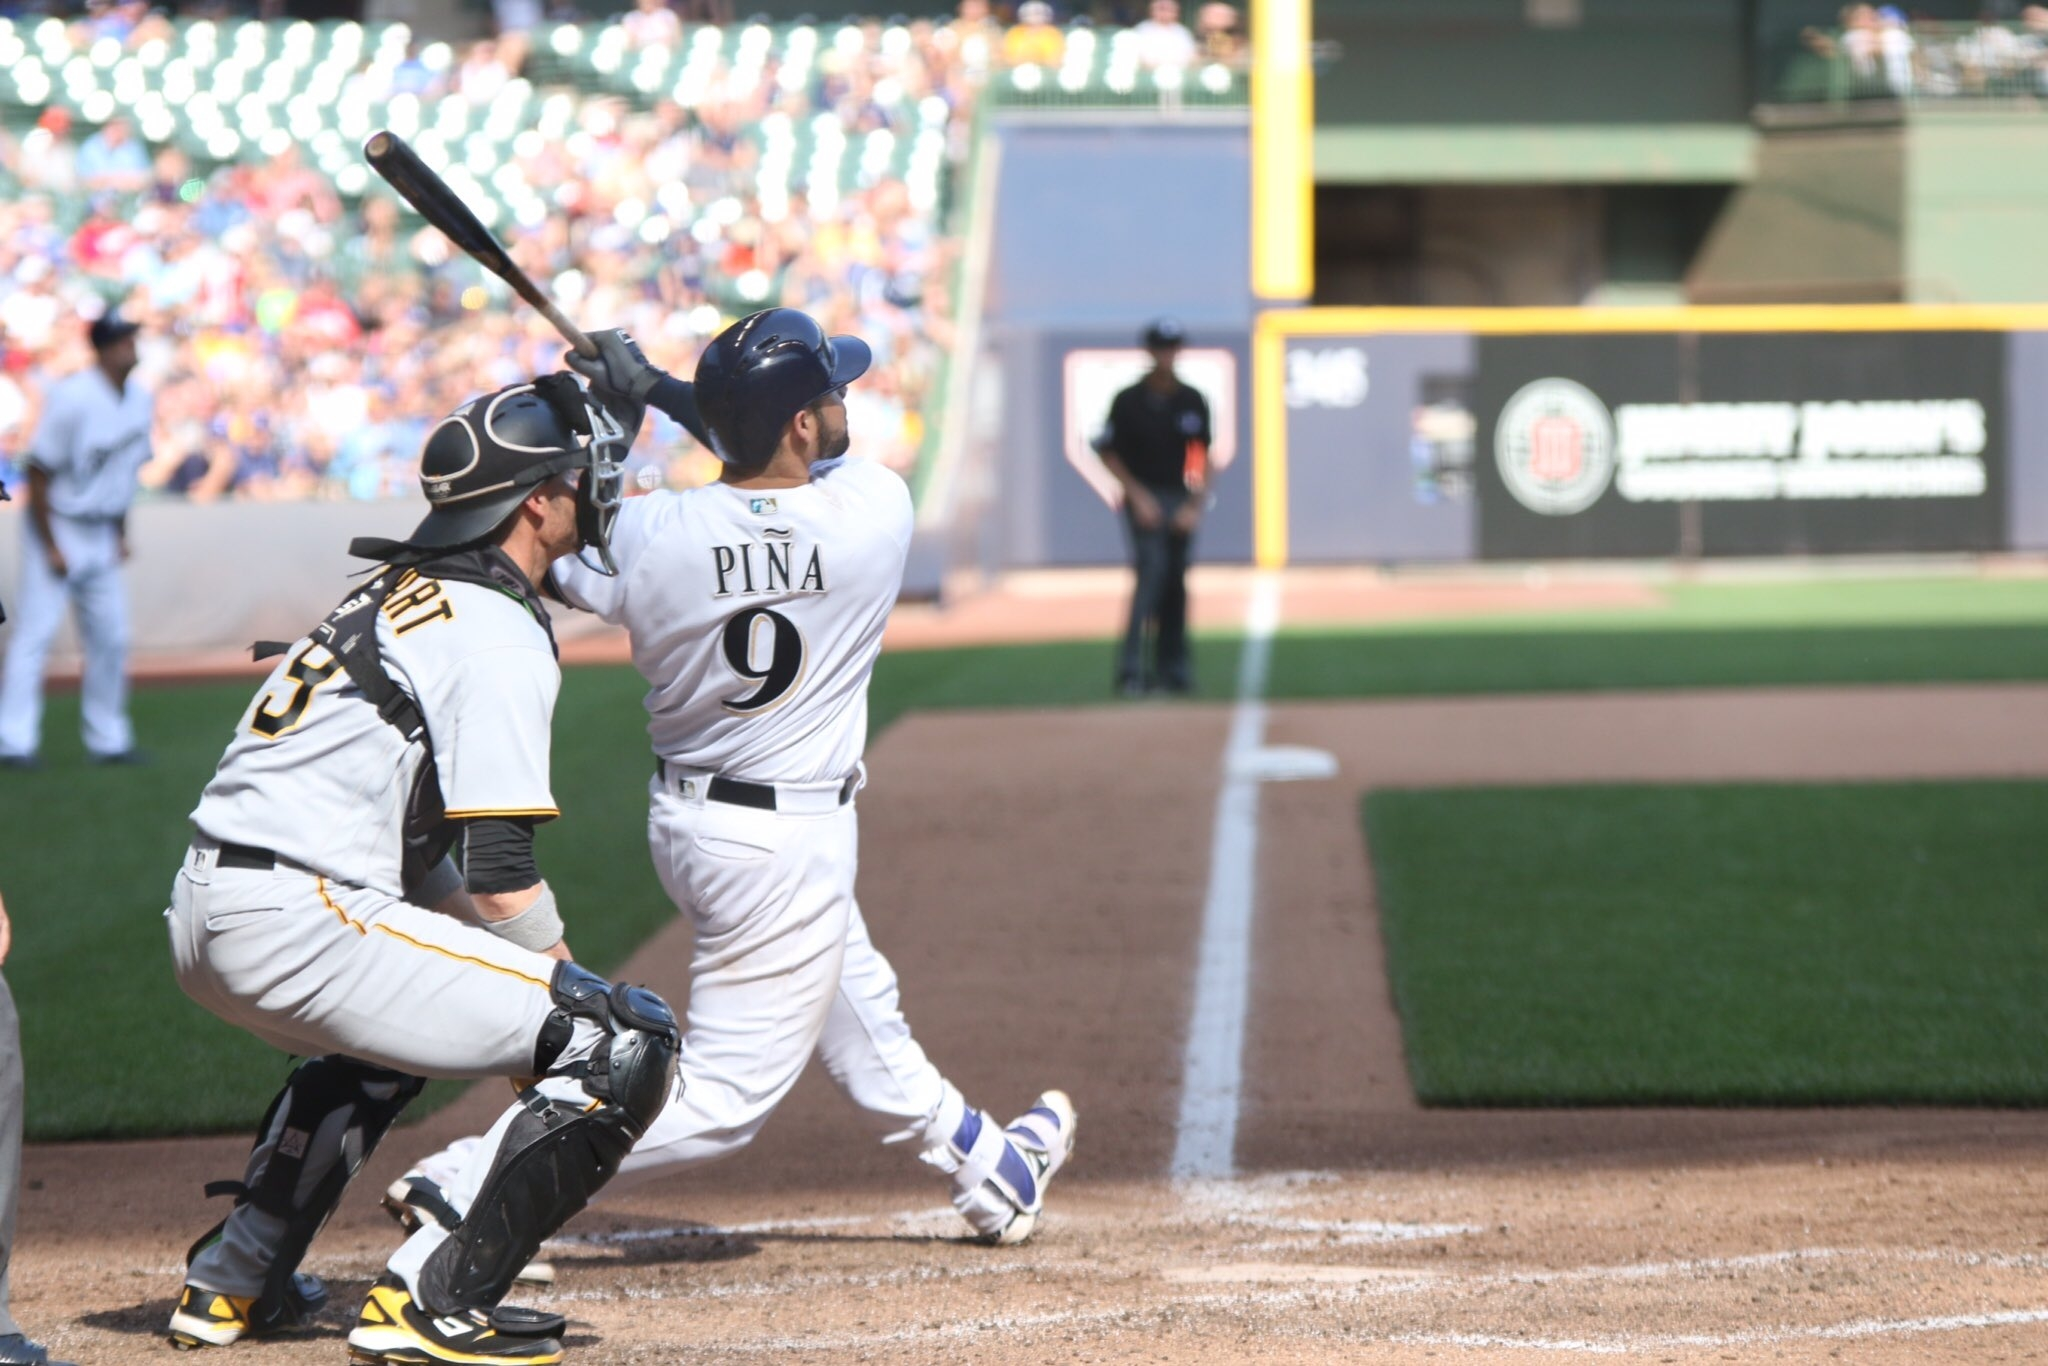 Despite Nelson's rough start, Brewers find another way to win